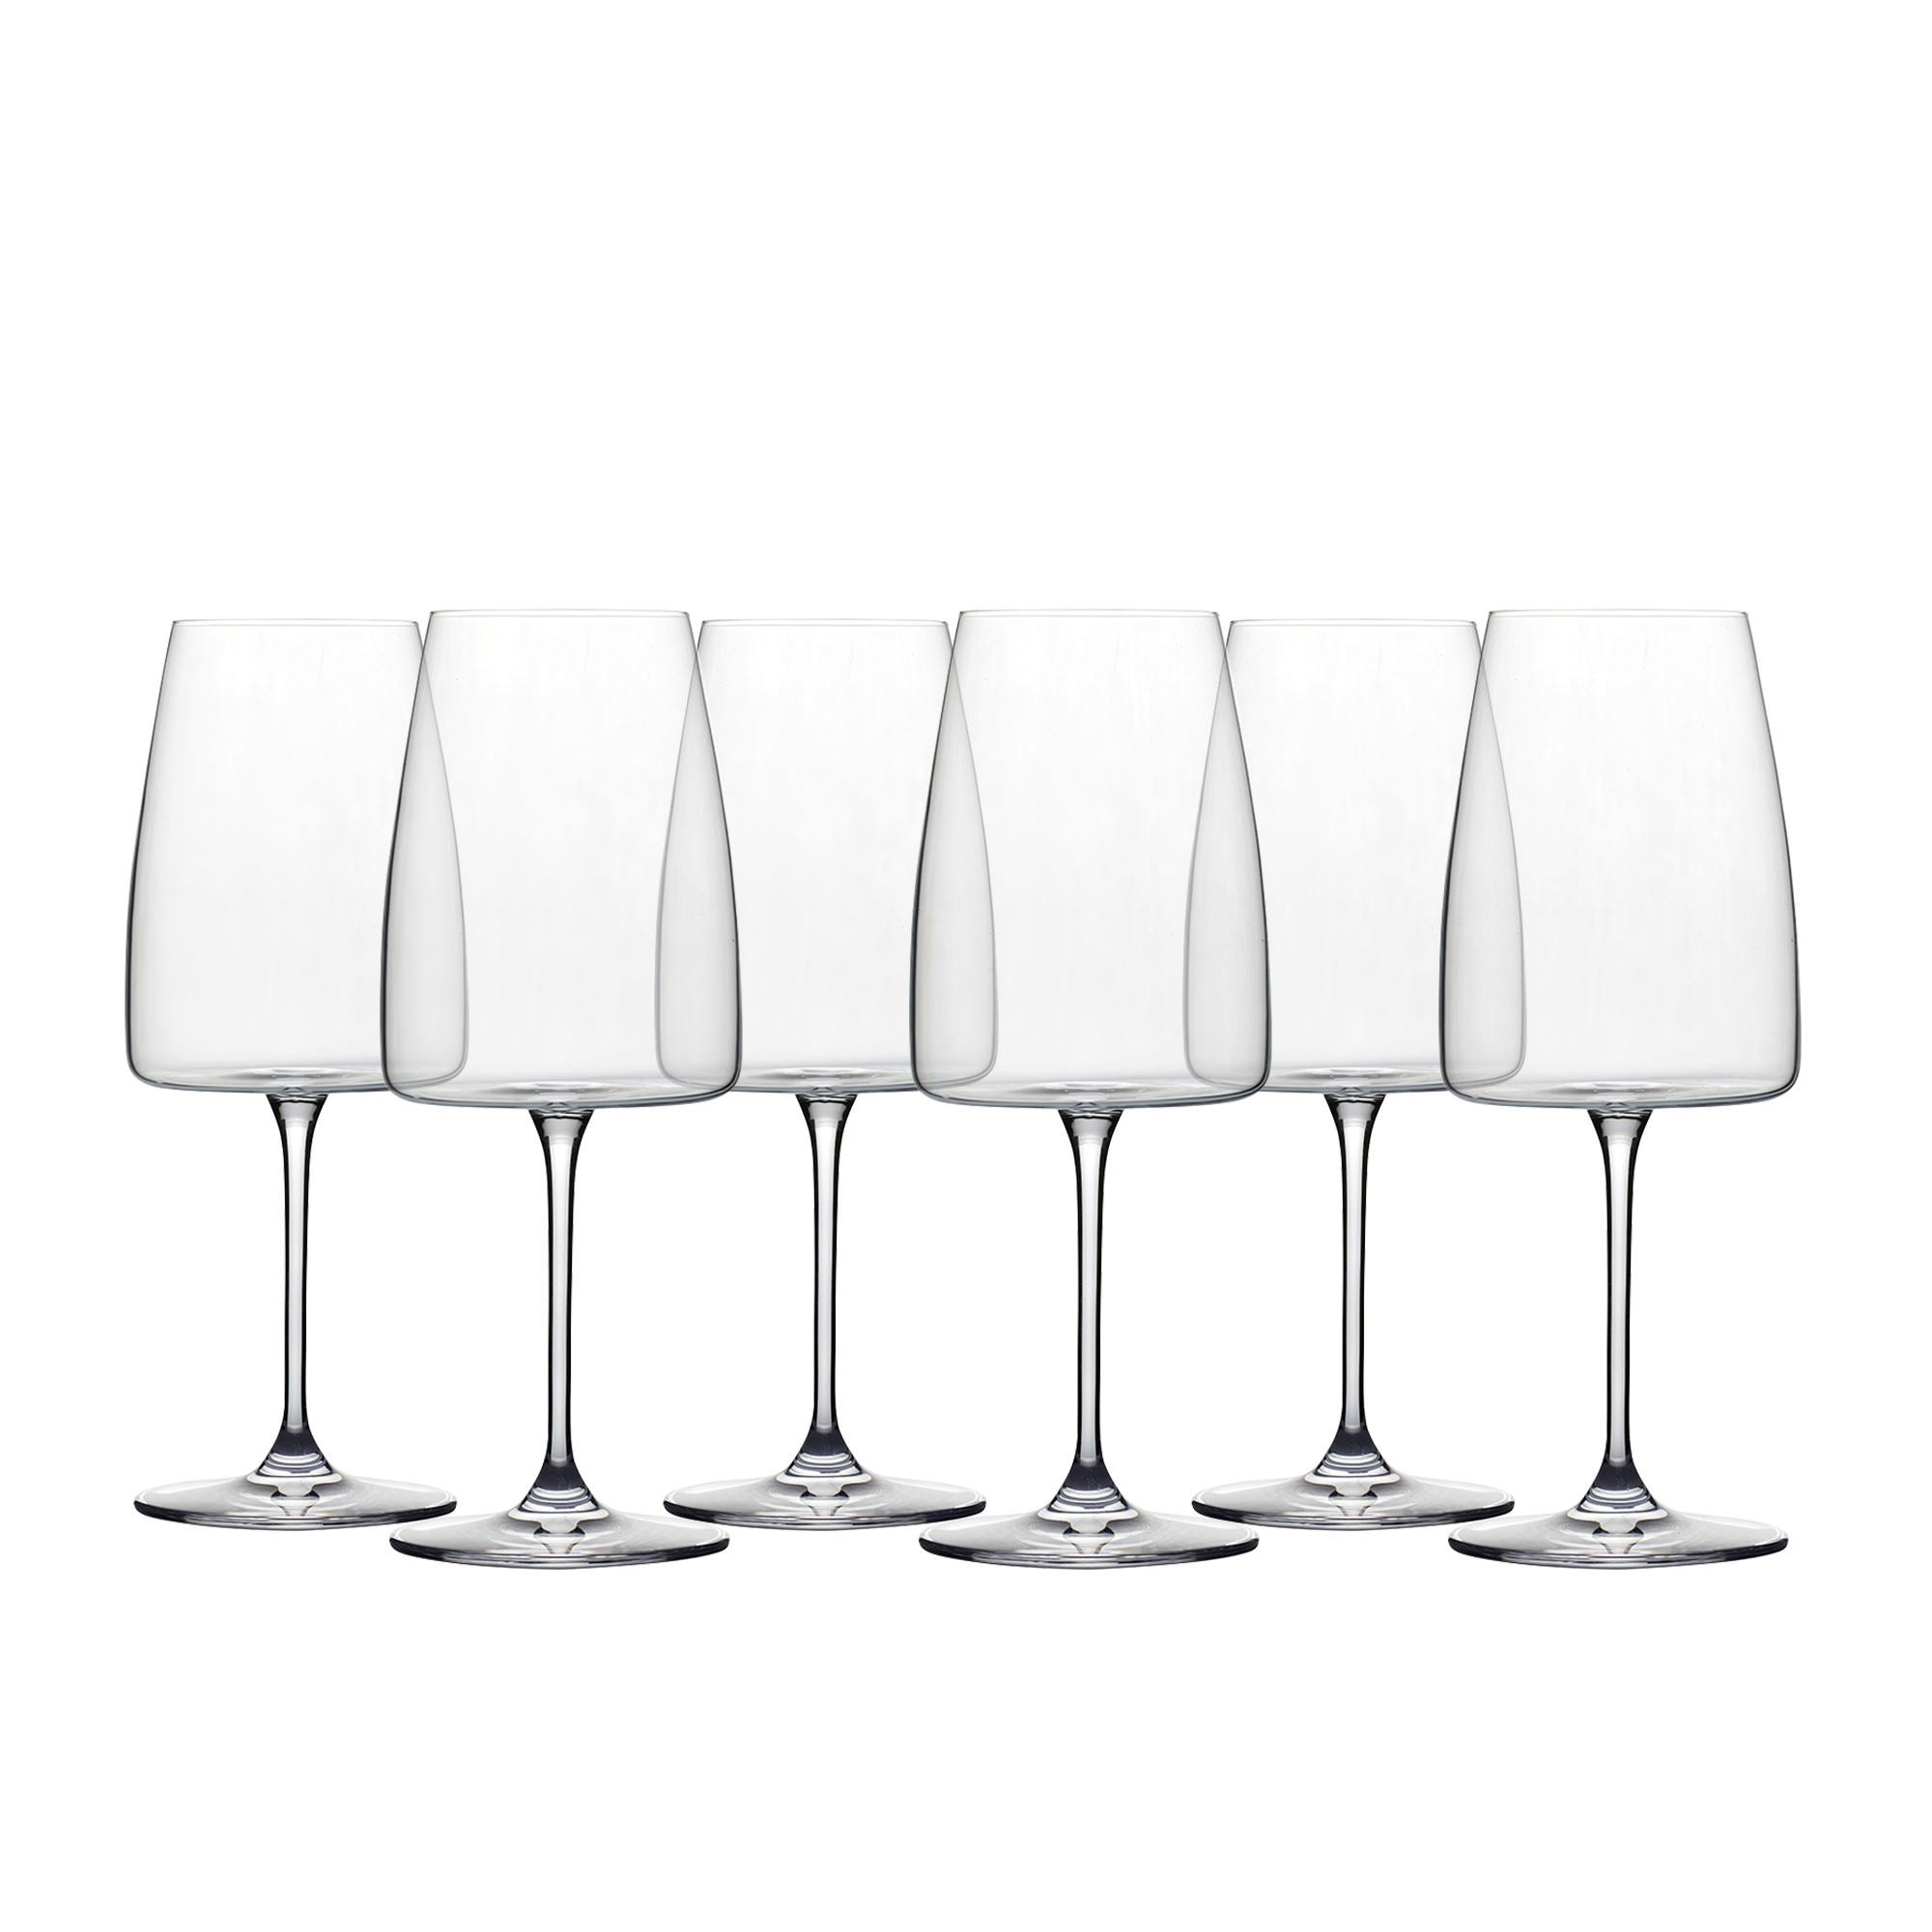 Noritake IVV Cortona 6pc White Wine Glass Set 510ml